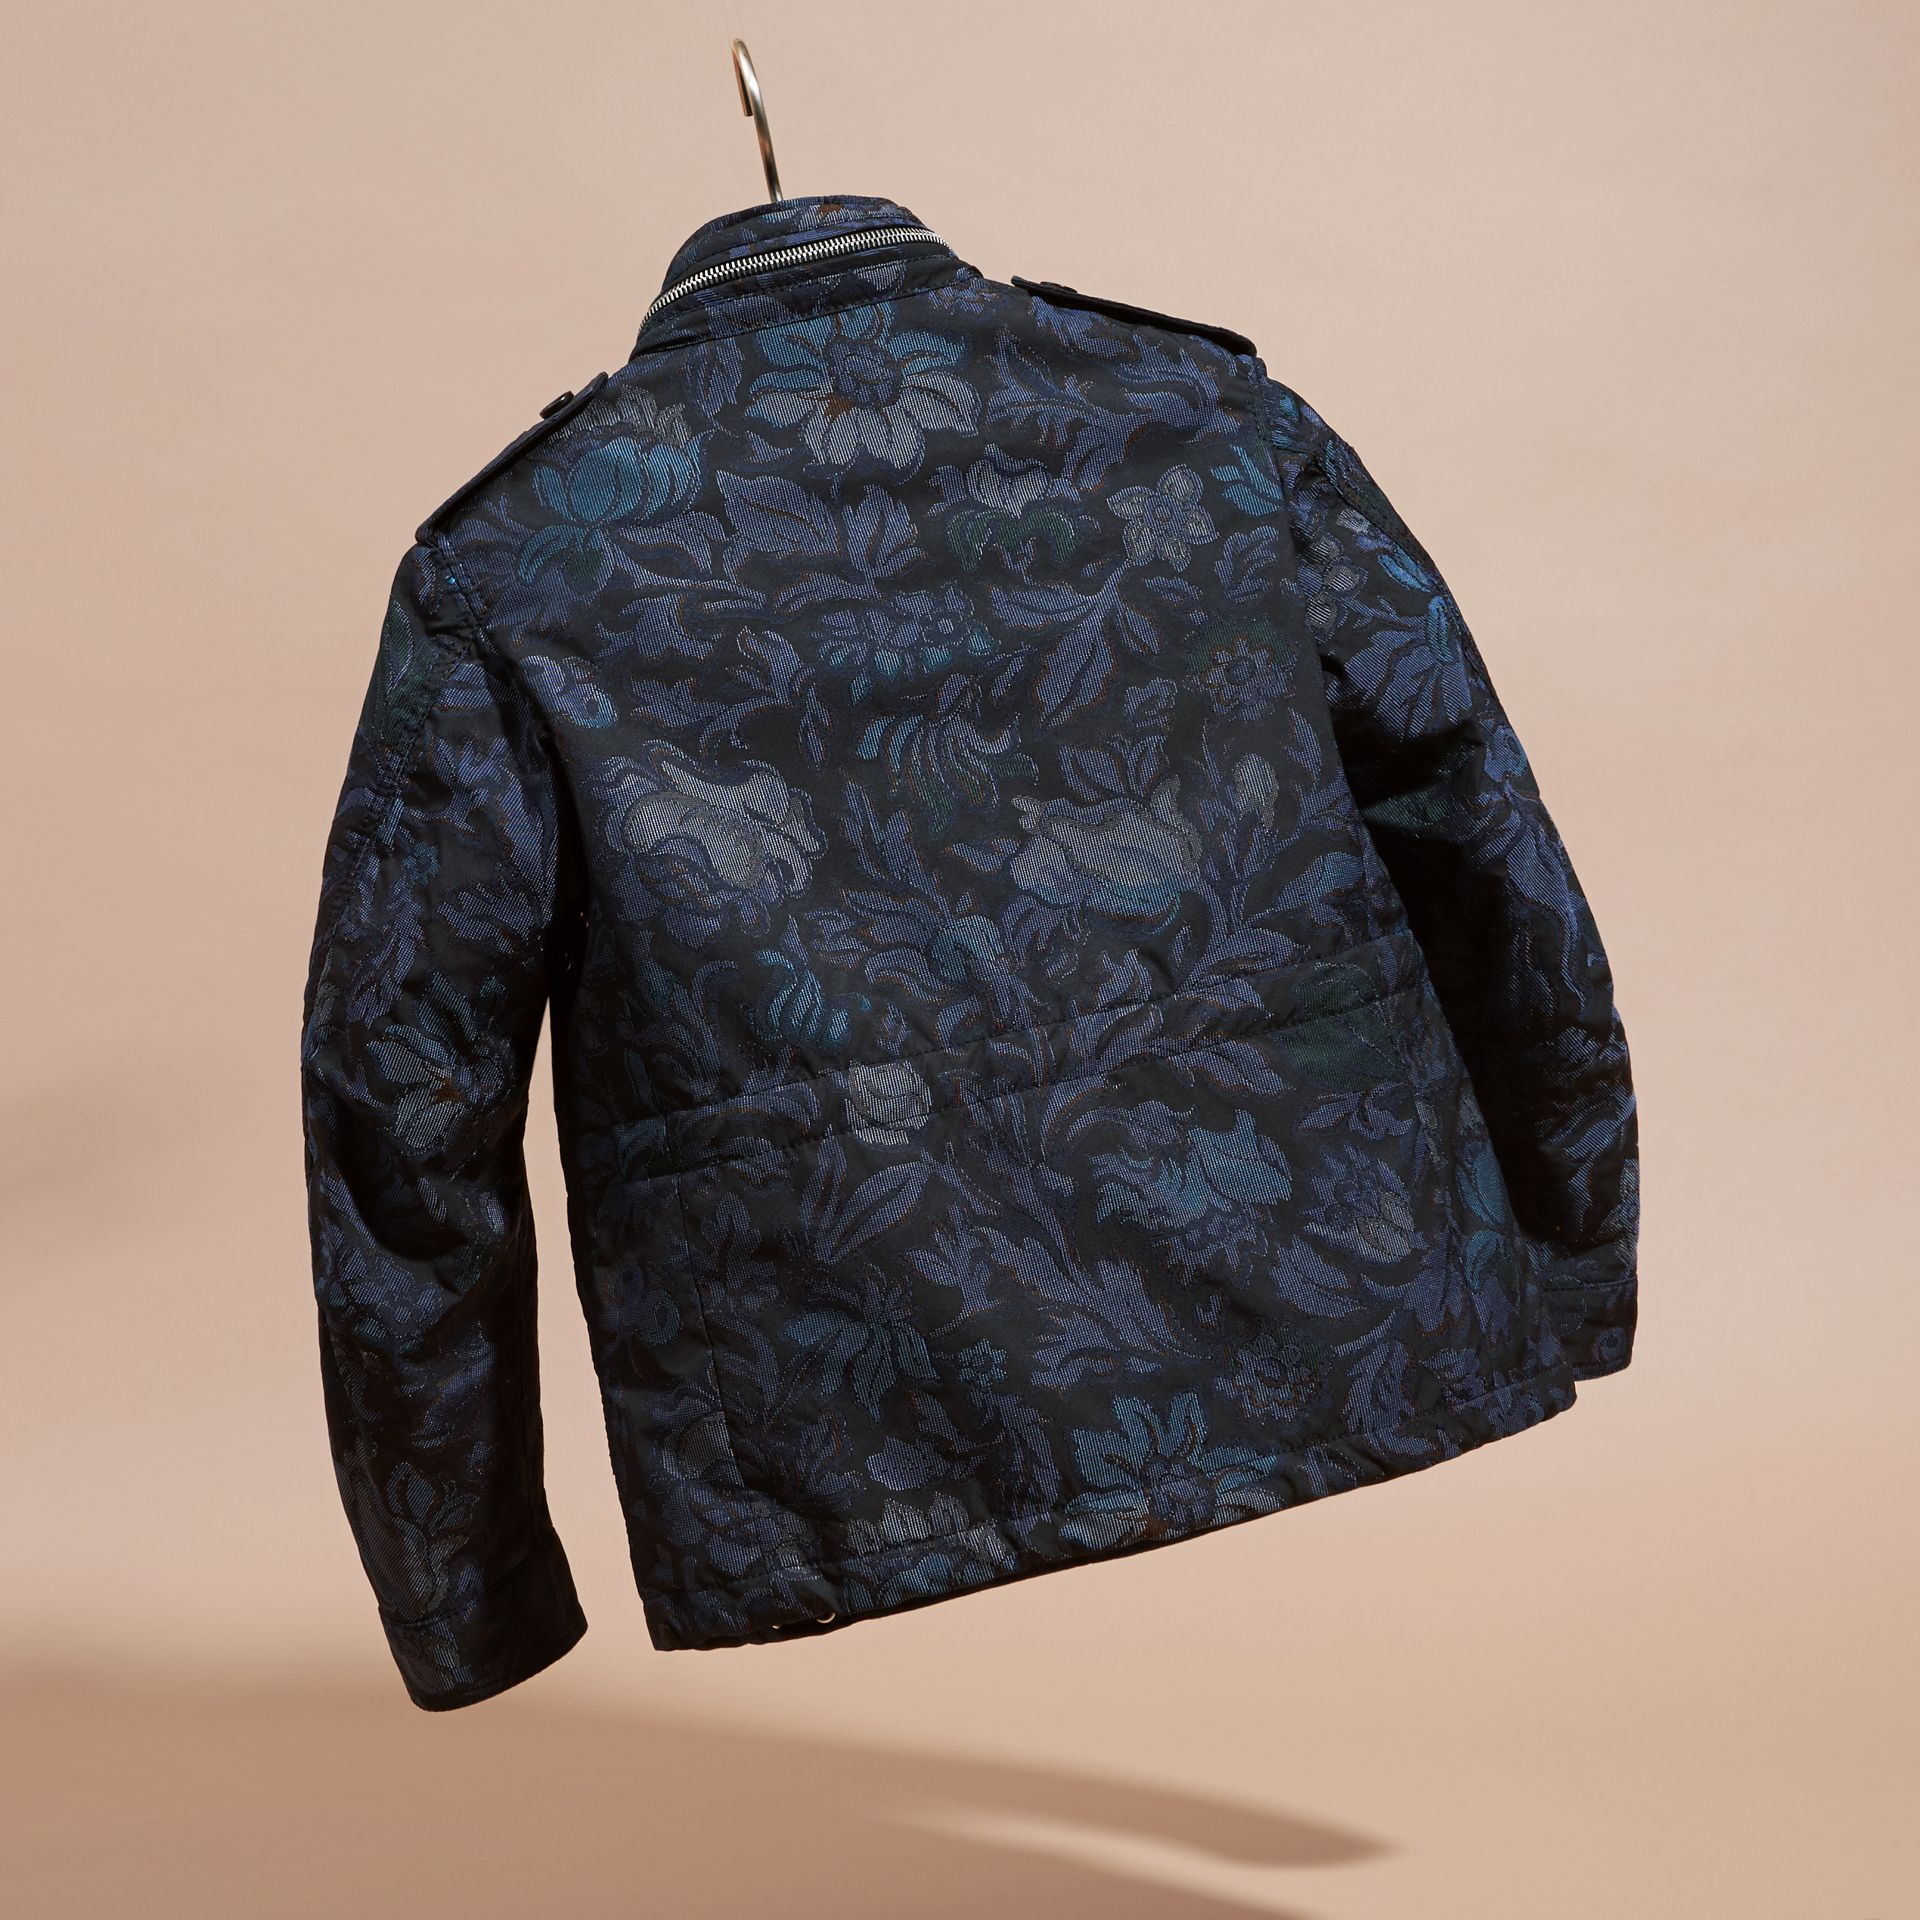 Navy Floral Jacquard Field Jacket with Packaway Hood - gallery image 4